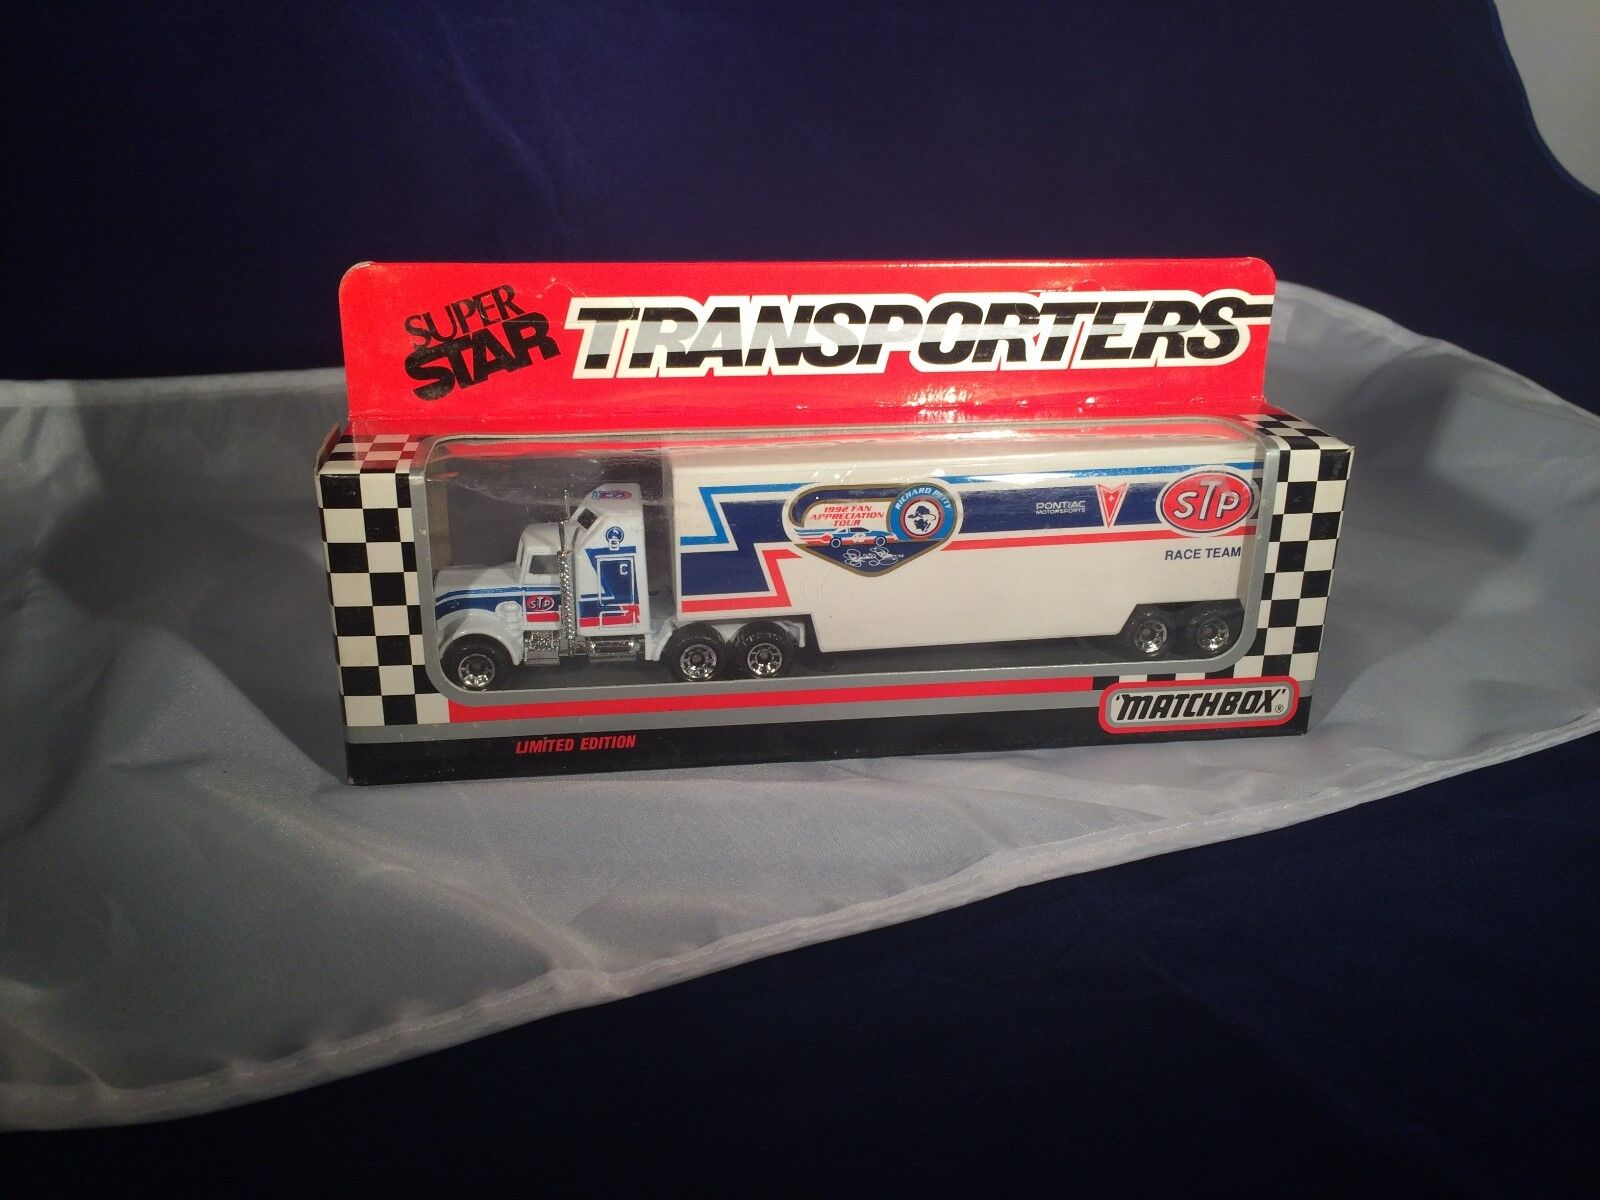 1992 Matchbox bianca Rose Transporters Super Star 1:87  43 R.Petty/STP